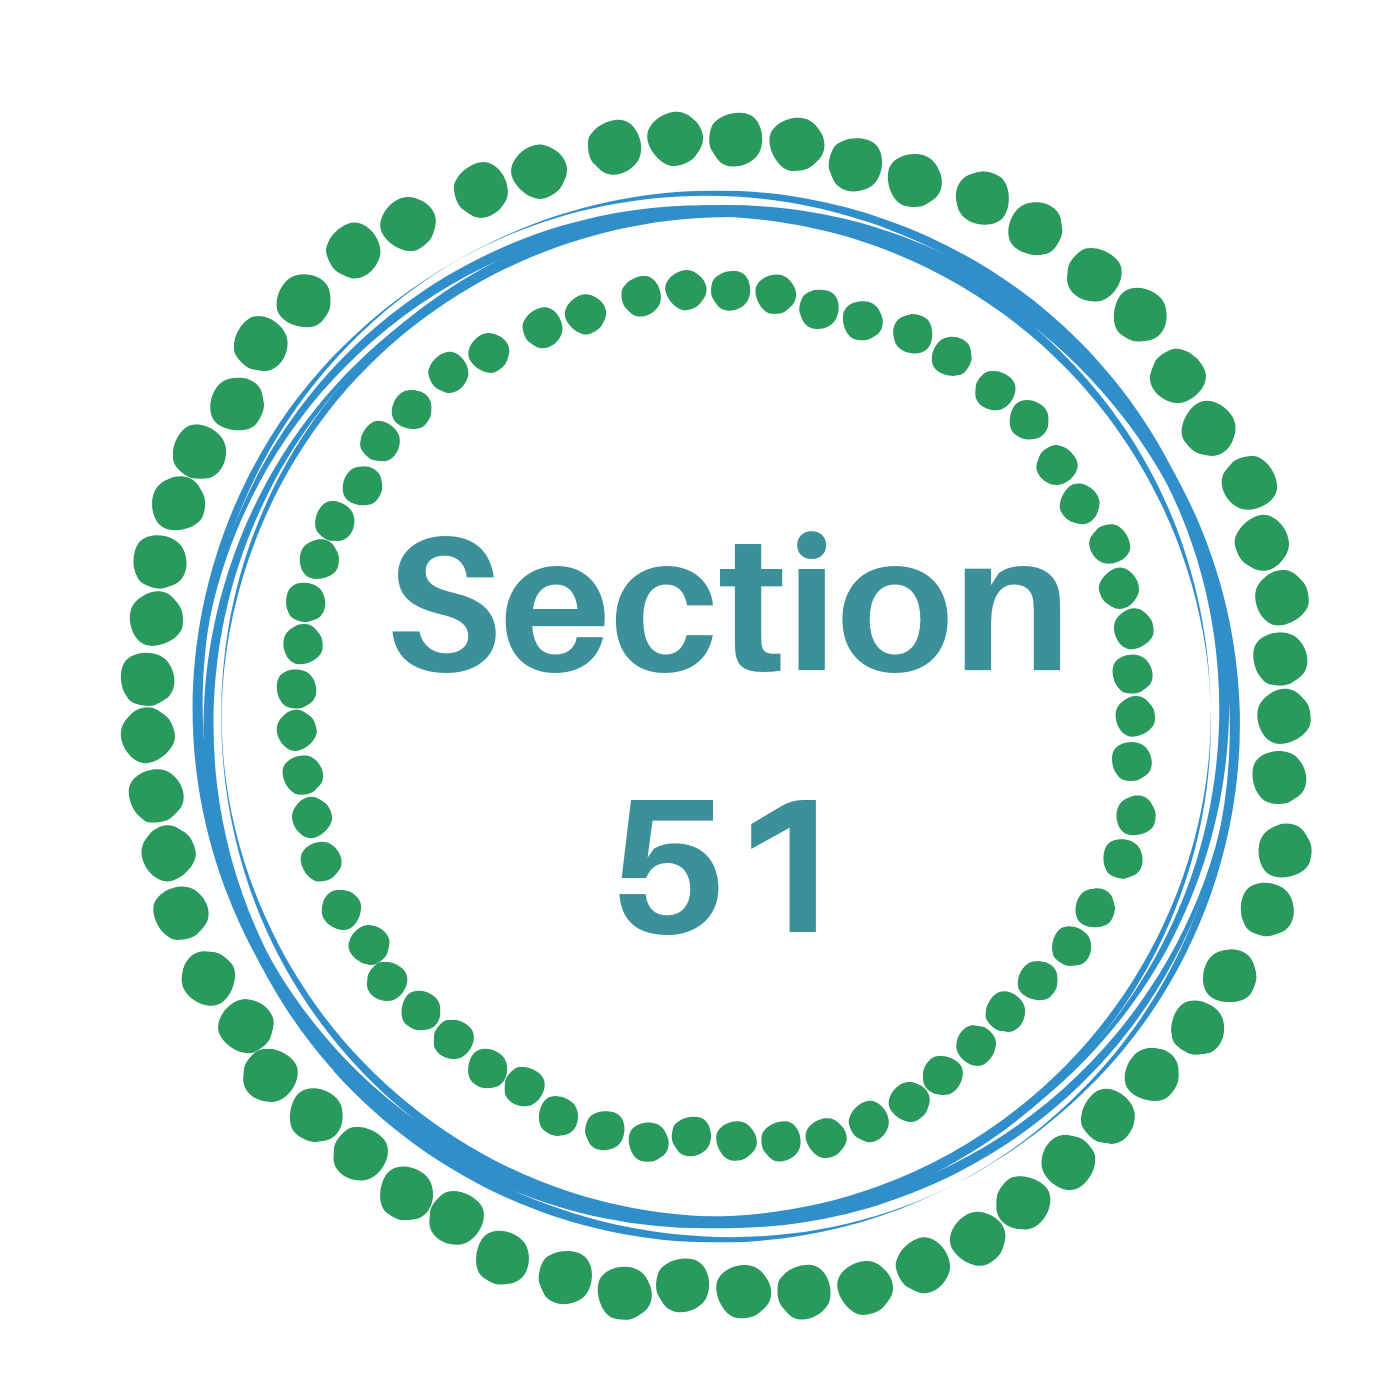 Section 51